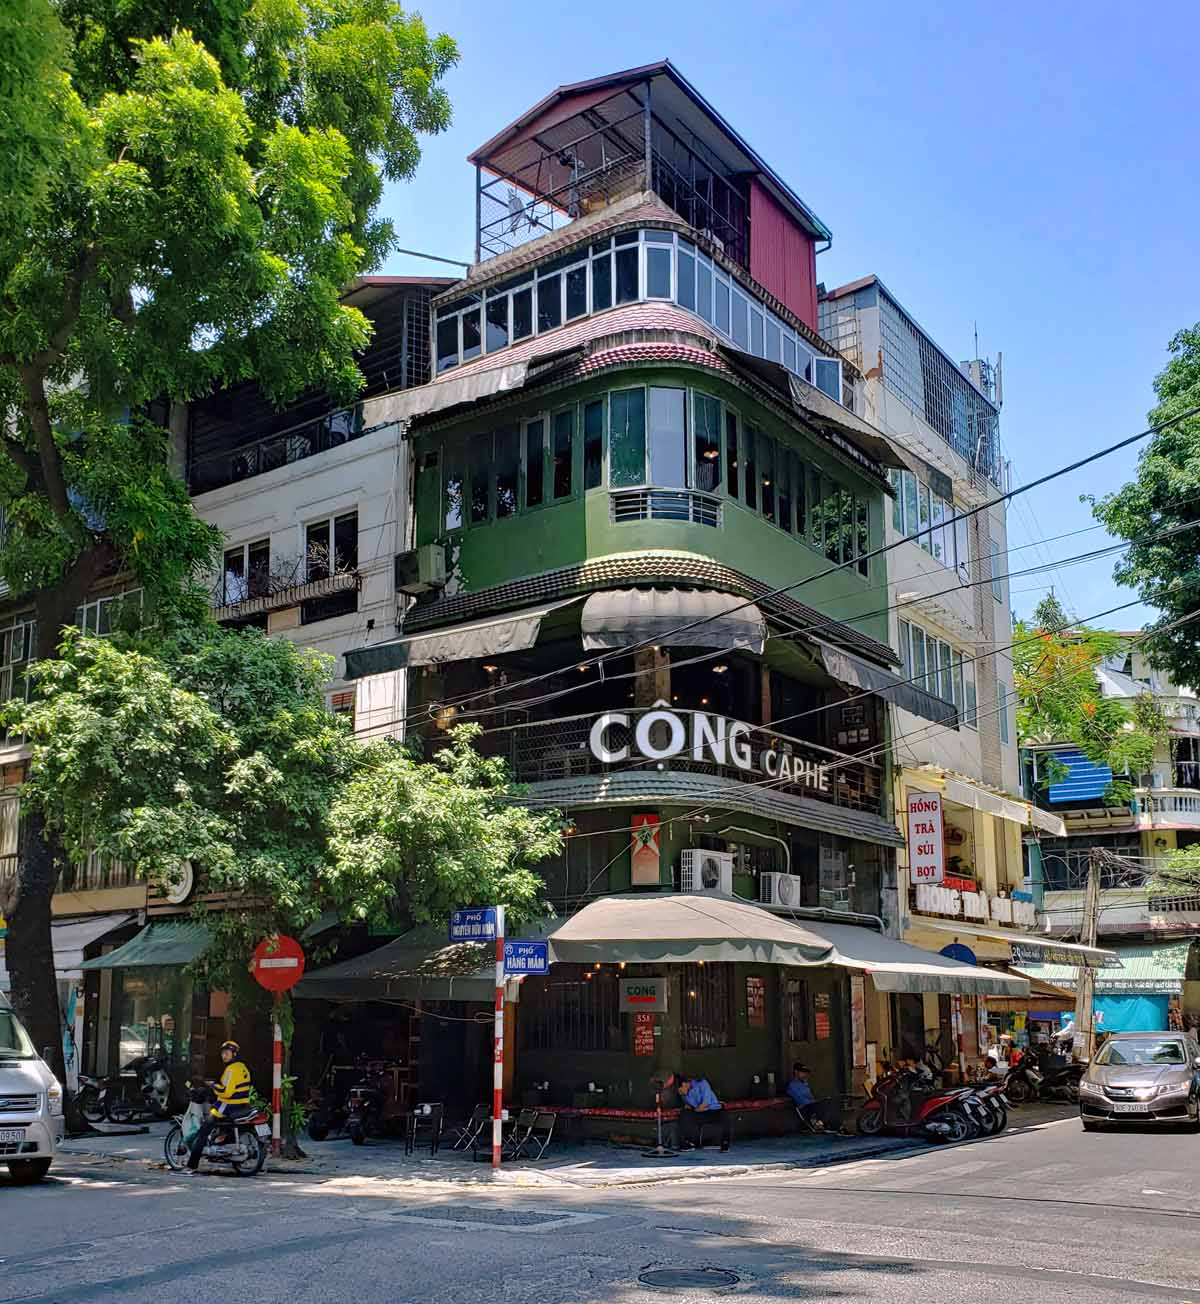 One of the Cộng Câ Phê coffe shops in old city Ha Noi.